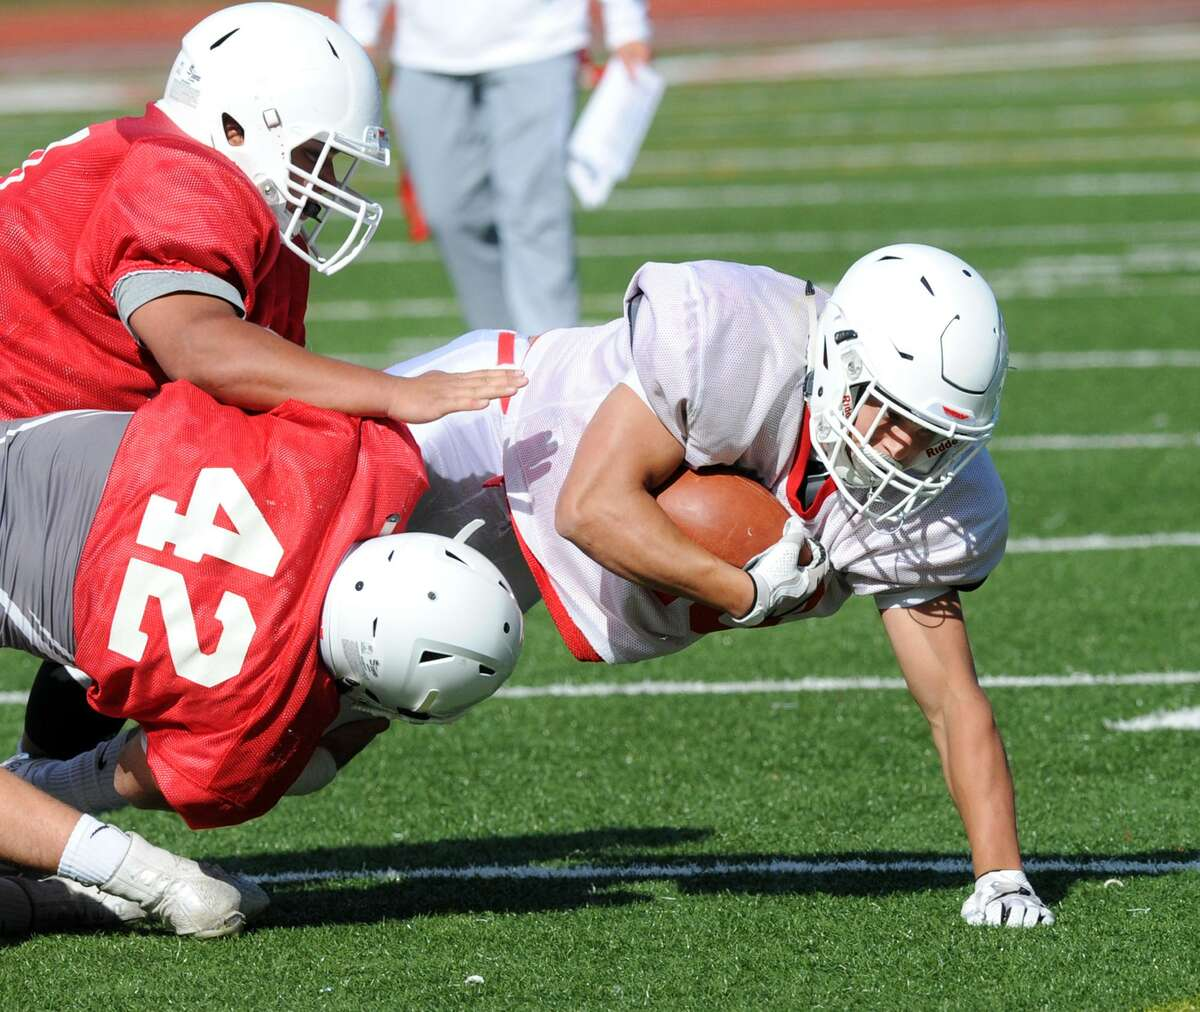 At right, Greenwich running back Tysen Comizio of the white team is tackled by Red team member Mozi Bici (#42) during the annual Red vs. White Greenwich High School football scrimmage at Cardinal Stadium in Greenwich, Conn., Saturday, June 16, 2018.